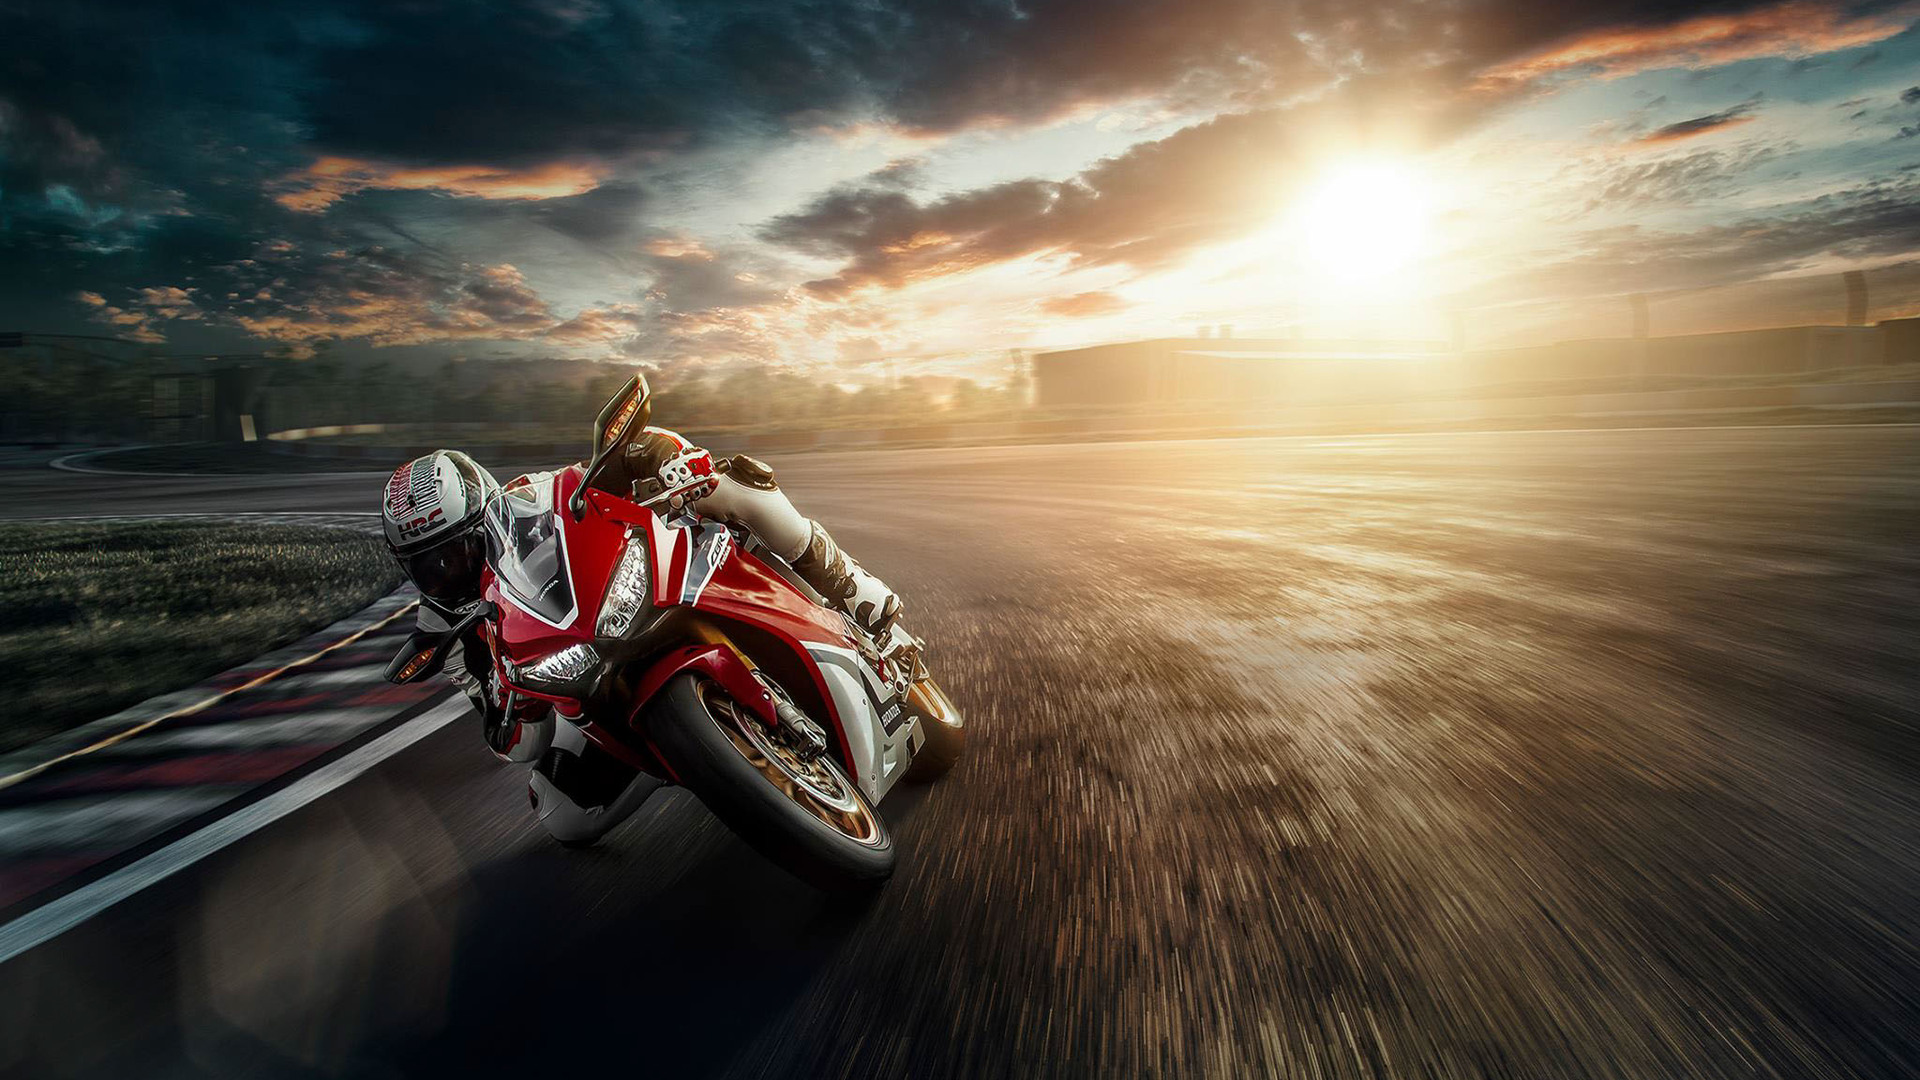 1920x1080 Honda Motorcycle Track Bike Laptop Full Hd 1080p Hd 4k Wallpapers Images Backgrounds Photos And Pictures